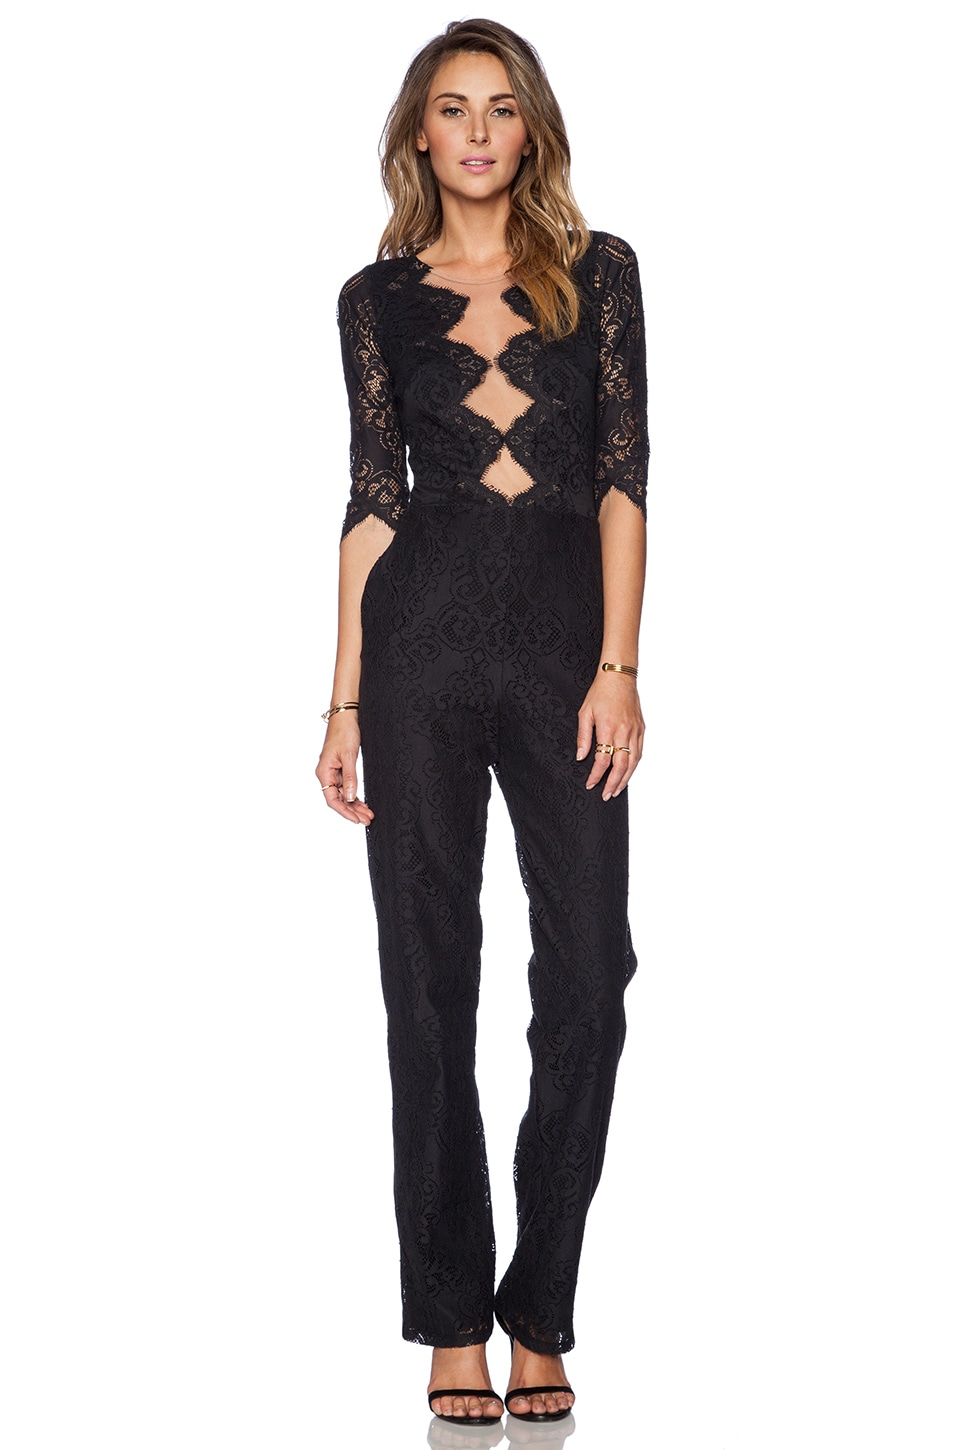 For Love & Lemons Noir Jumpsuit in Black